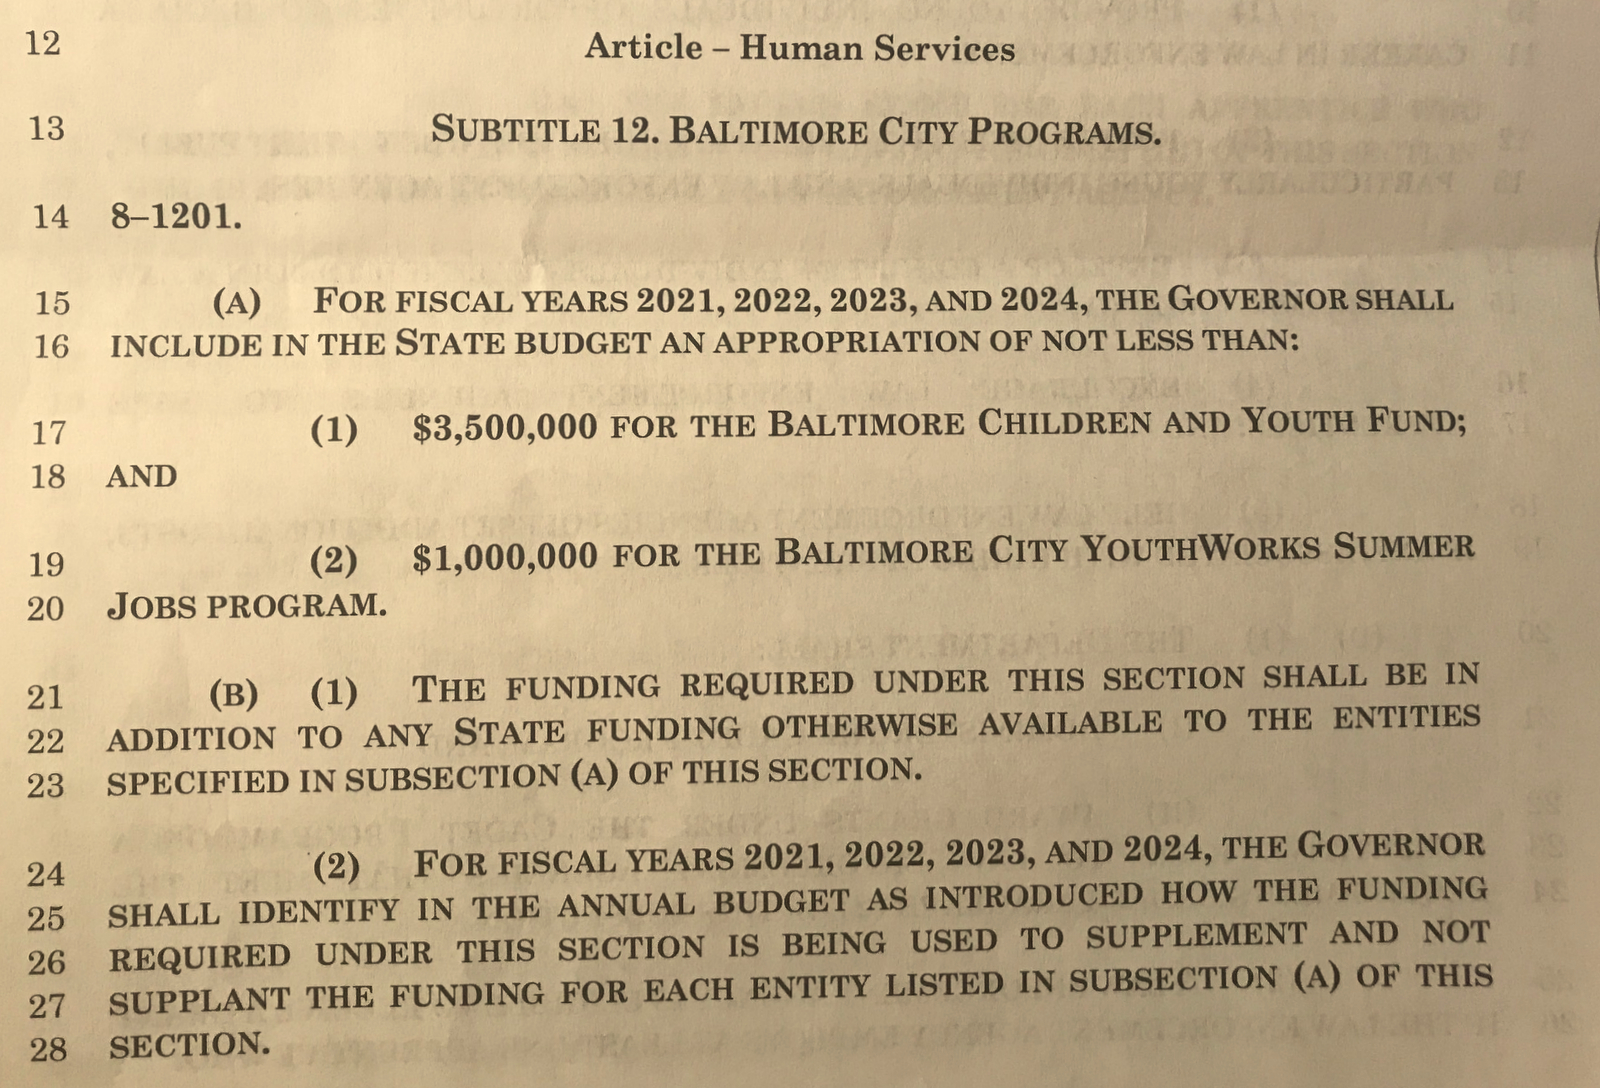 Language in the policing bill that directs state funds to be spent on two youth programs favored by Baltimore's two top elected officials.